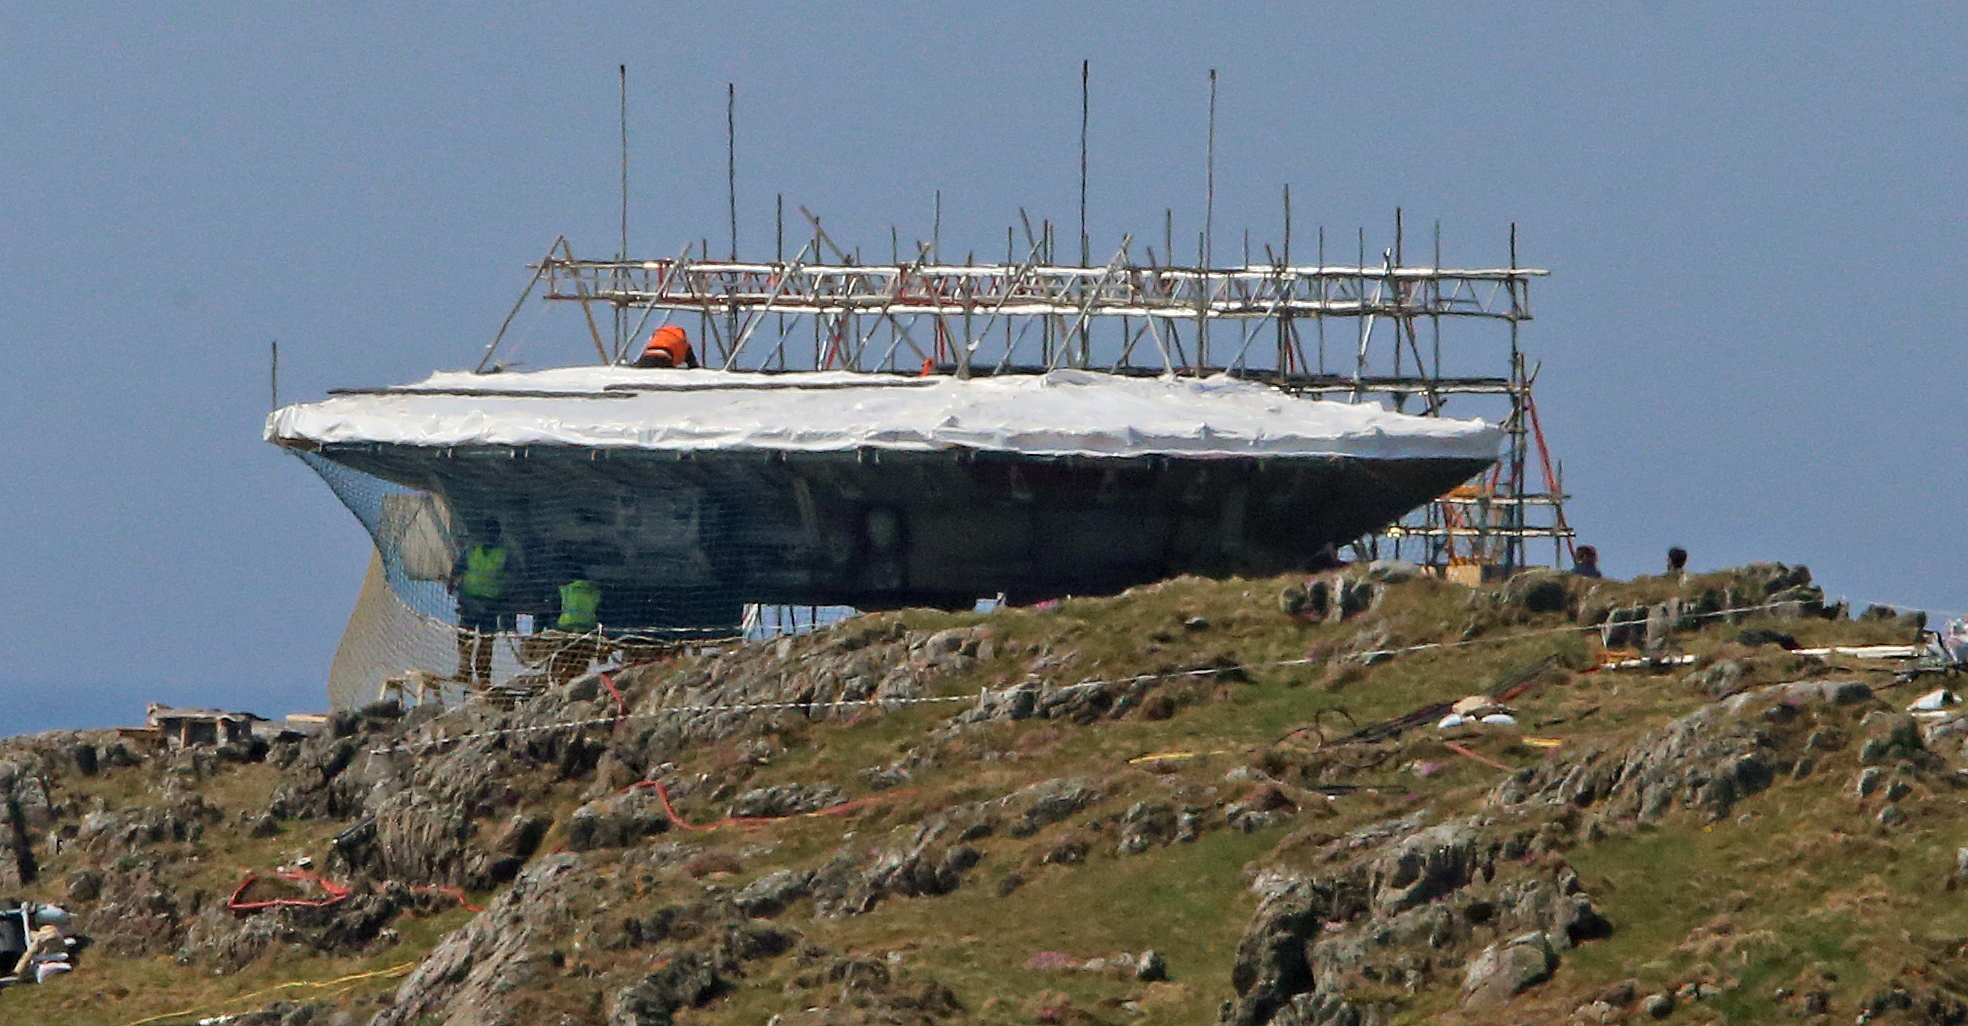 A set is created in Malin Head, Co Donegal Ireland, as filming for the next Star Wars movie will take place there, May 12, 2016.